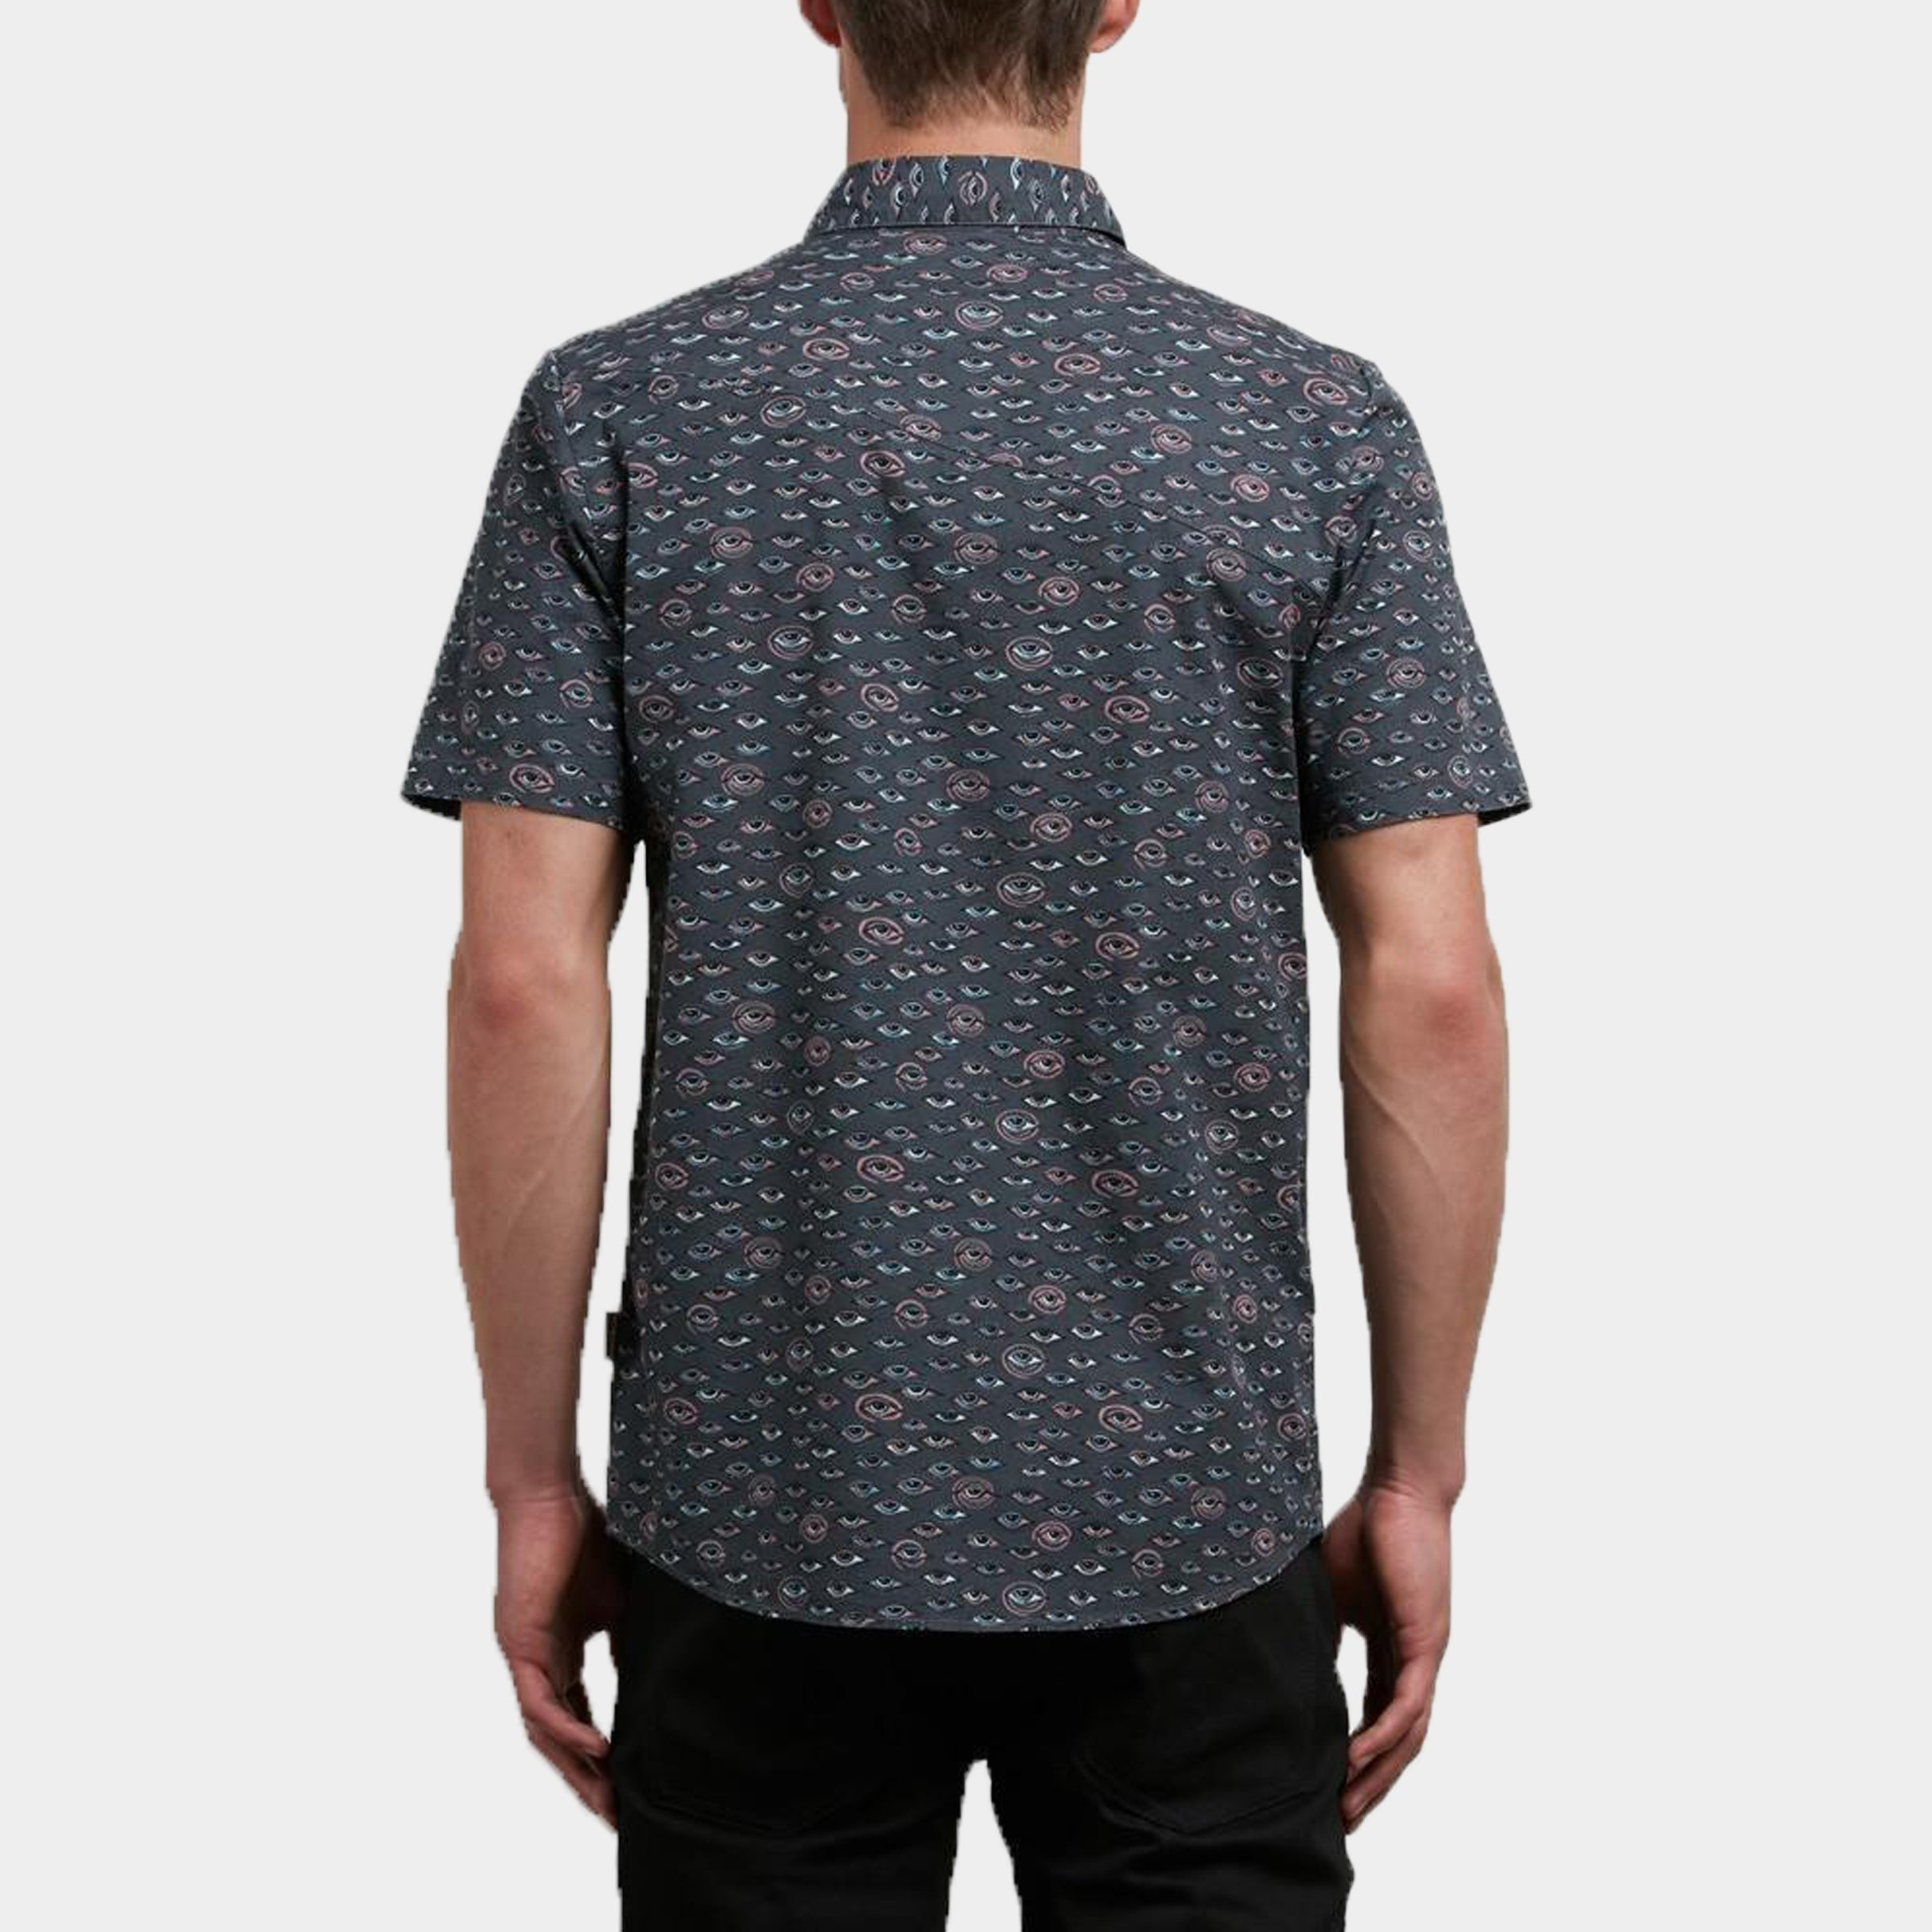 Burch Shirt | Stealth